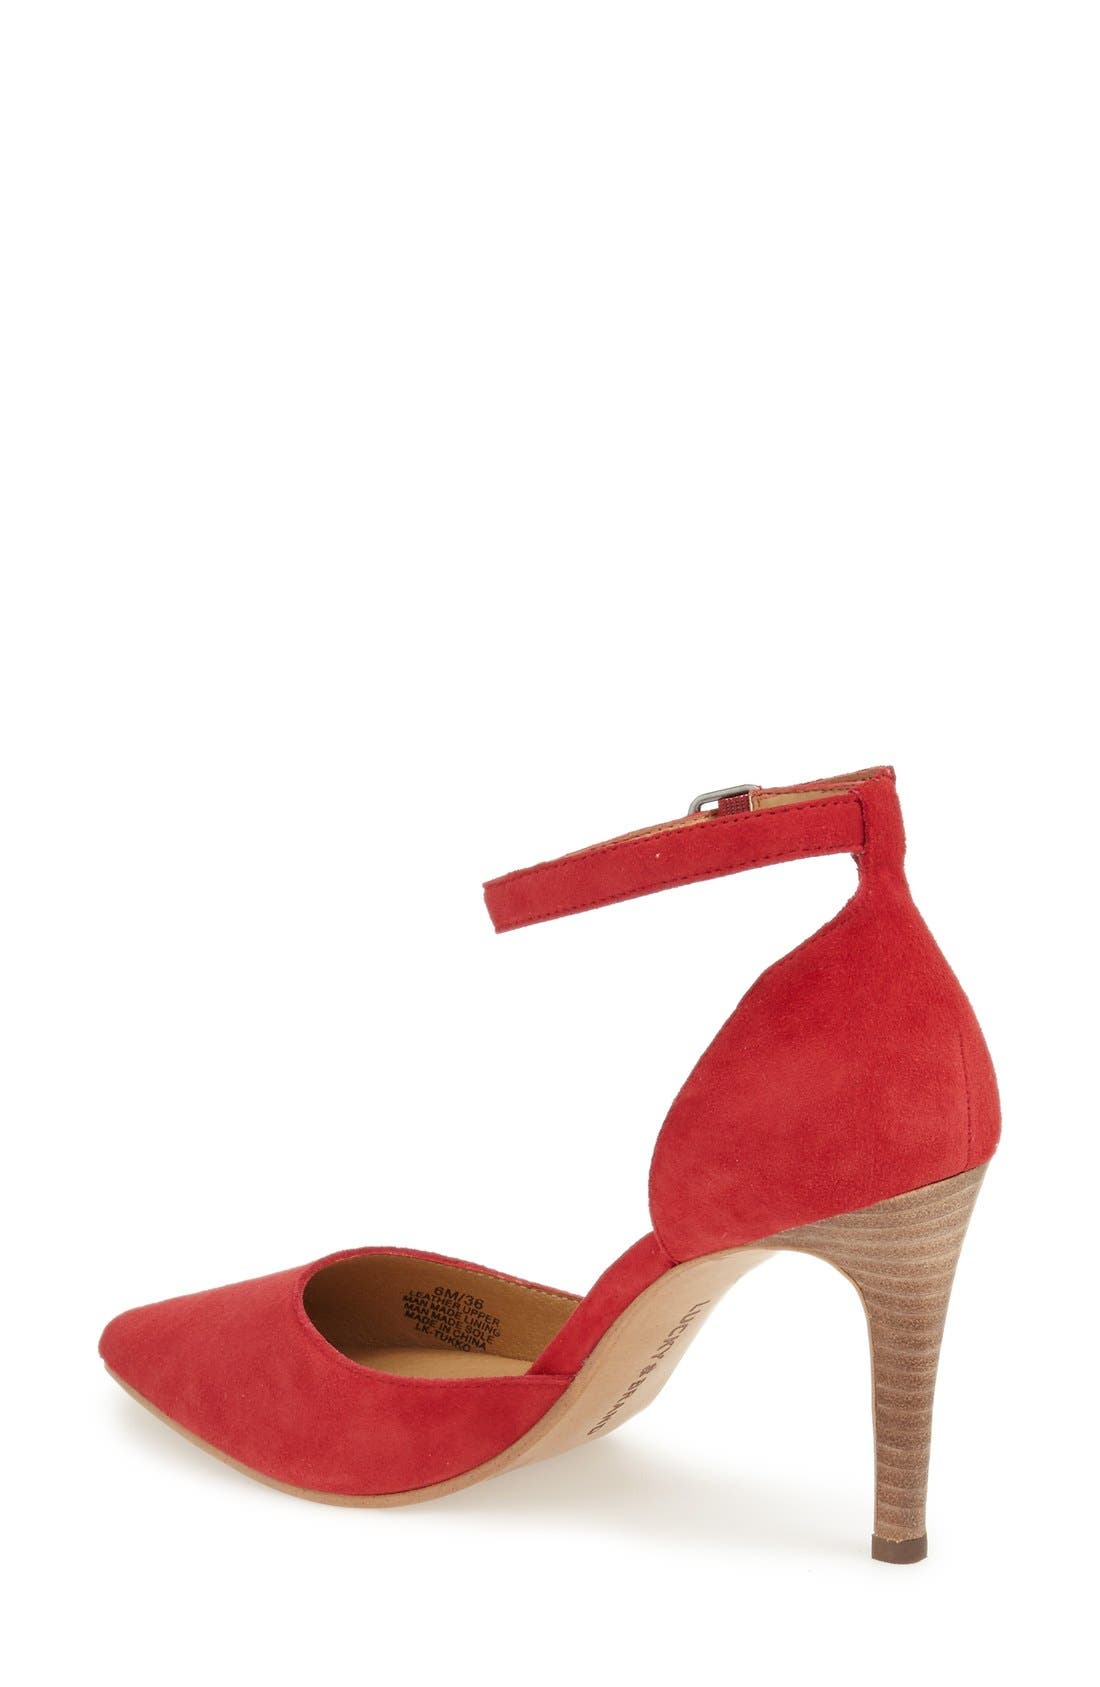 Alternate Image 2  - Lucky Brand 'Tukko' d'Orsay Ankle Strap Pump (Women)